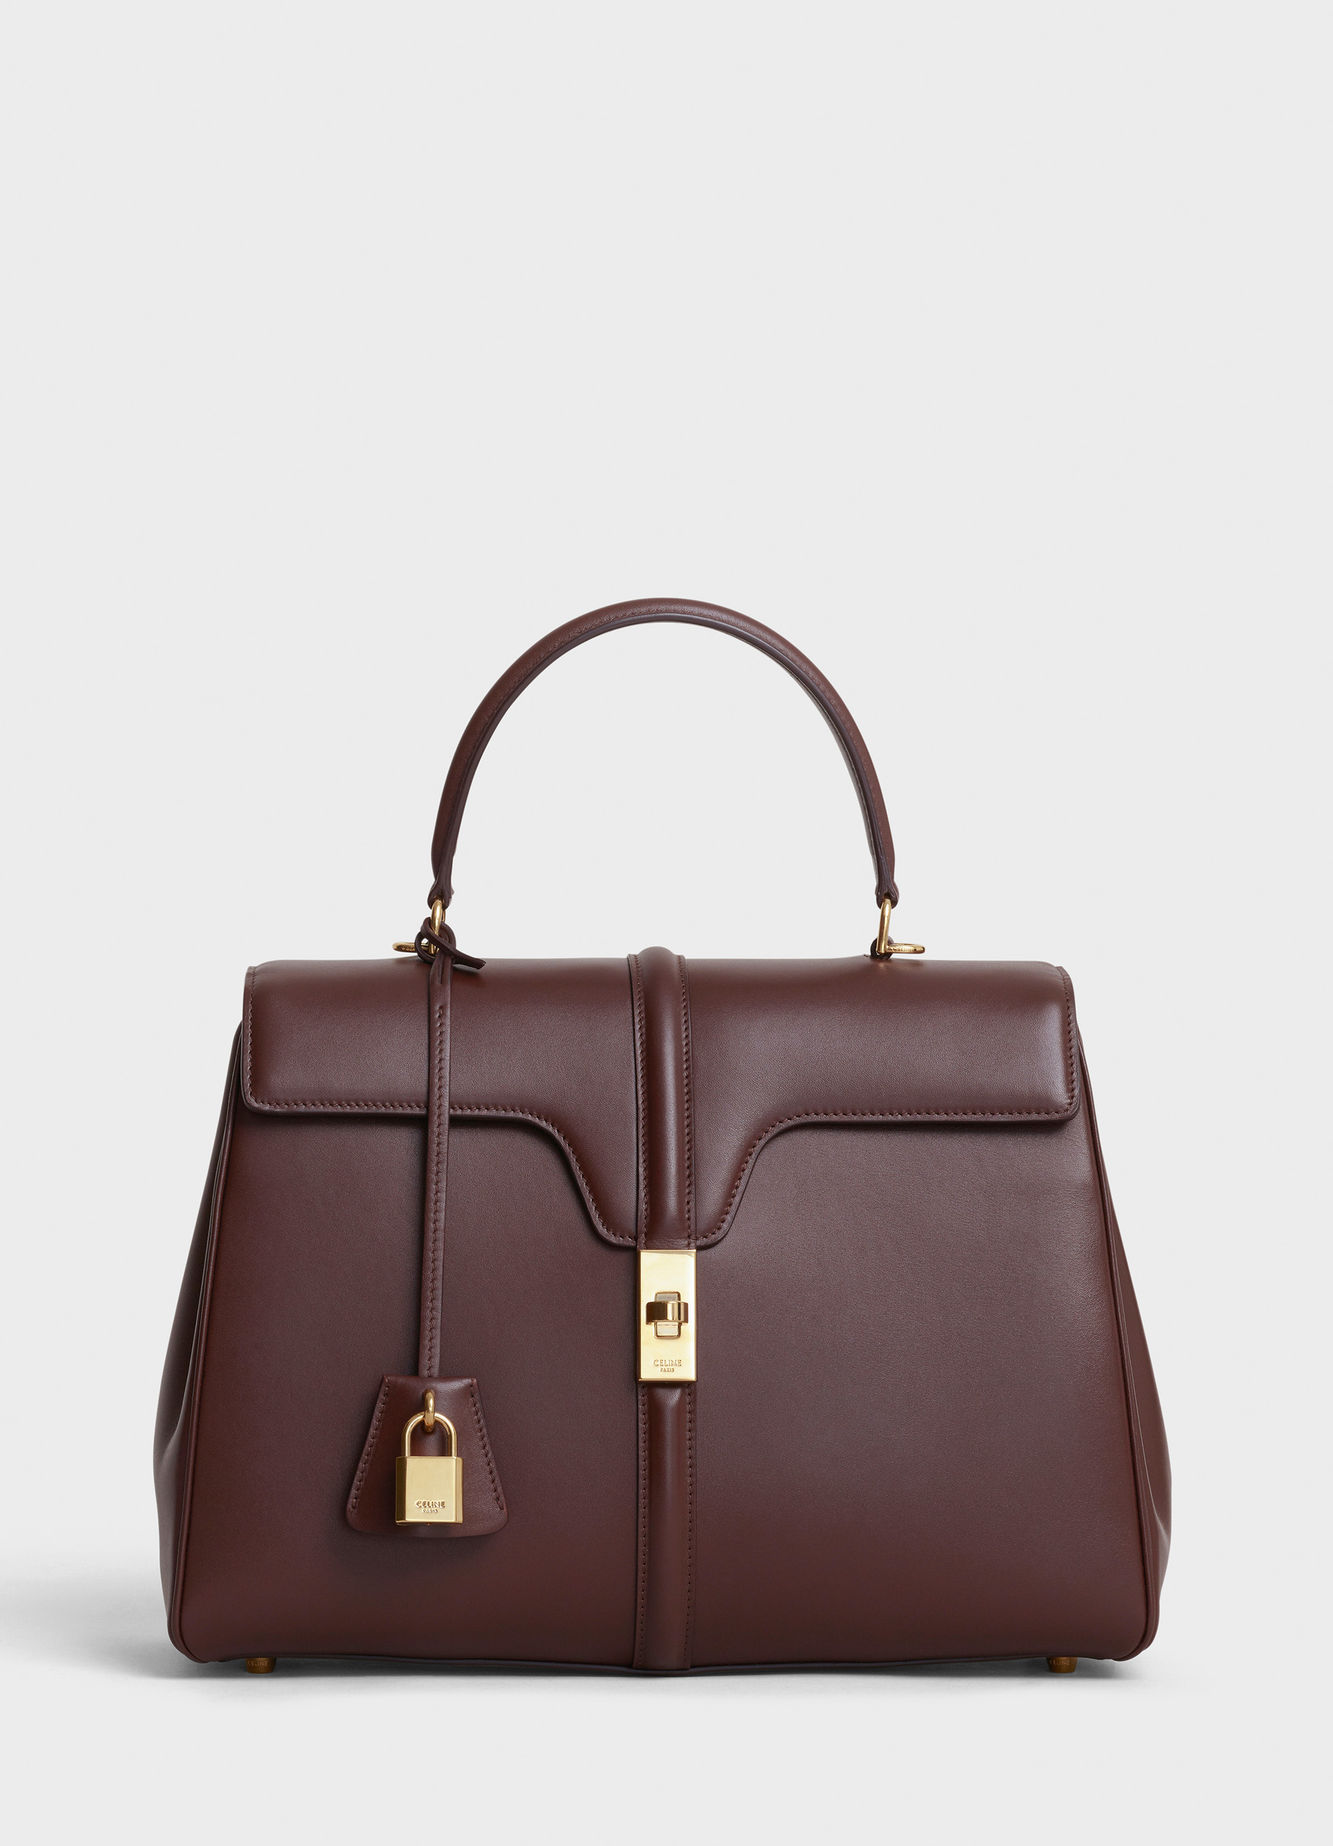 CELINE MEDIUM 16 BAG IN SATINATED CALFSKIN 187373 BROWN